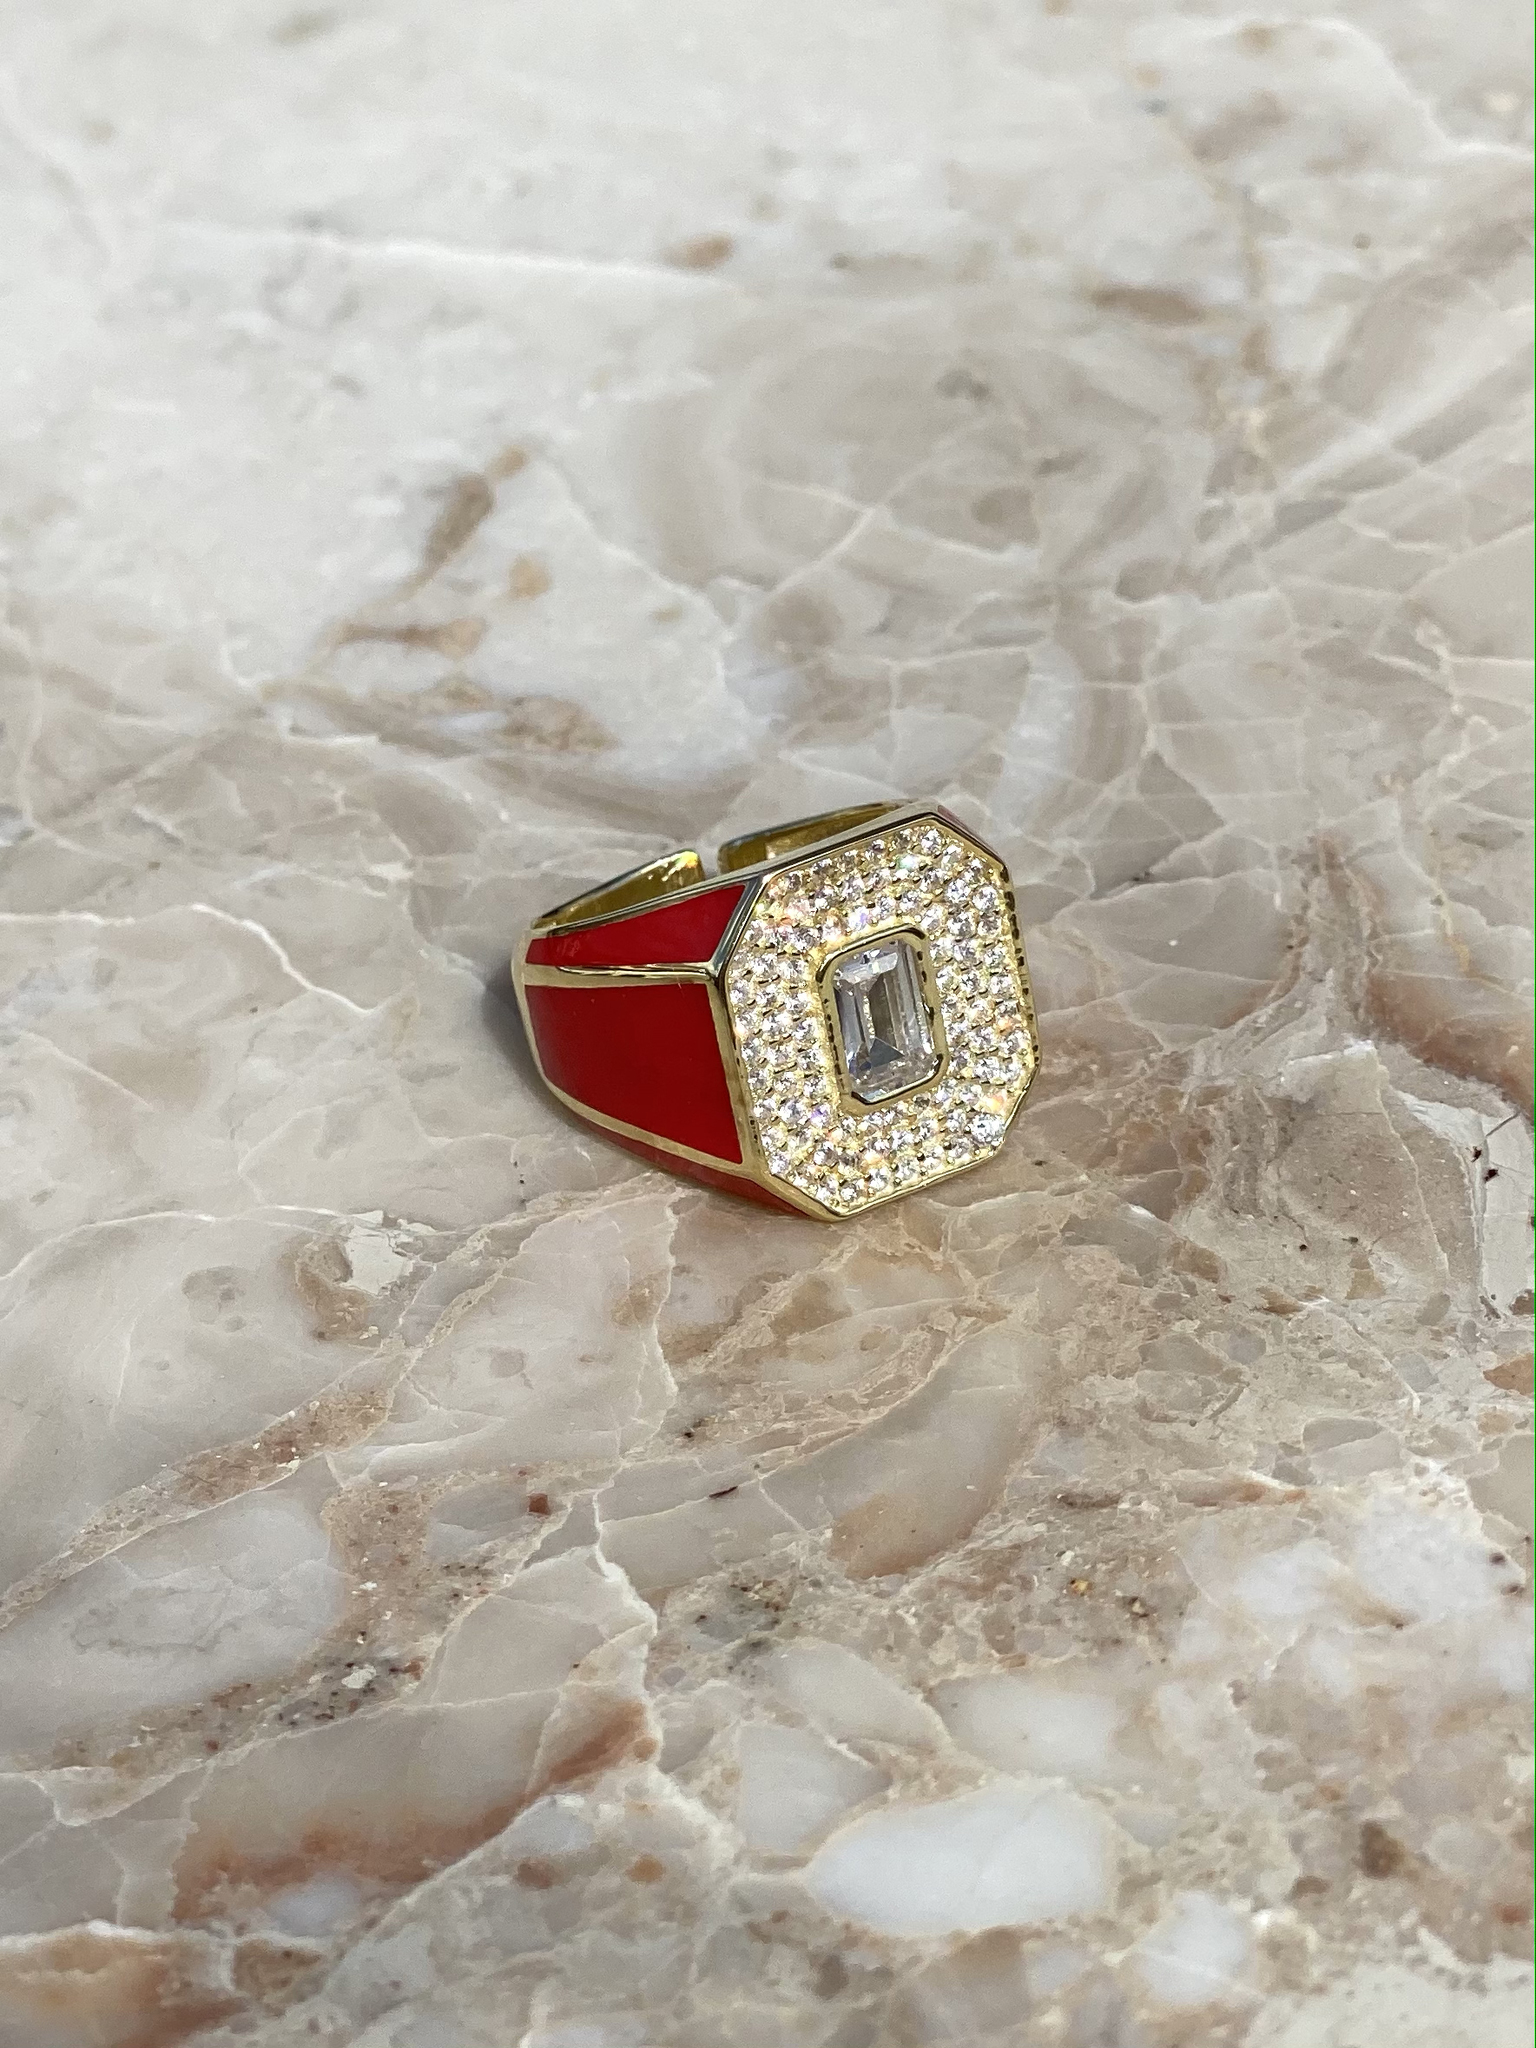 Signet ring in gold plated silver with red enamel and zircons